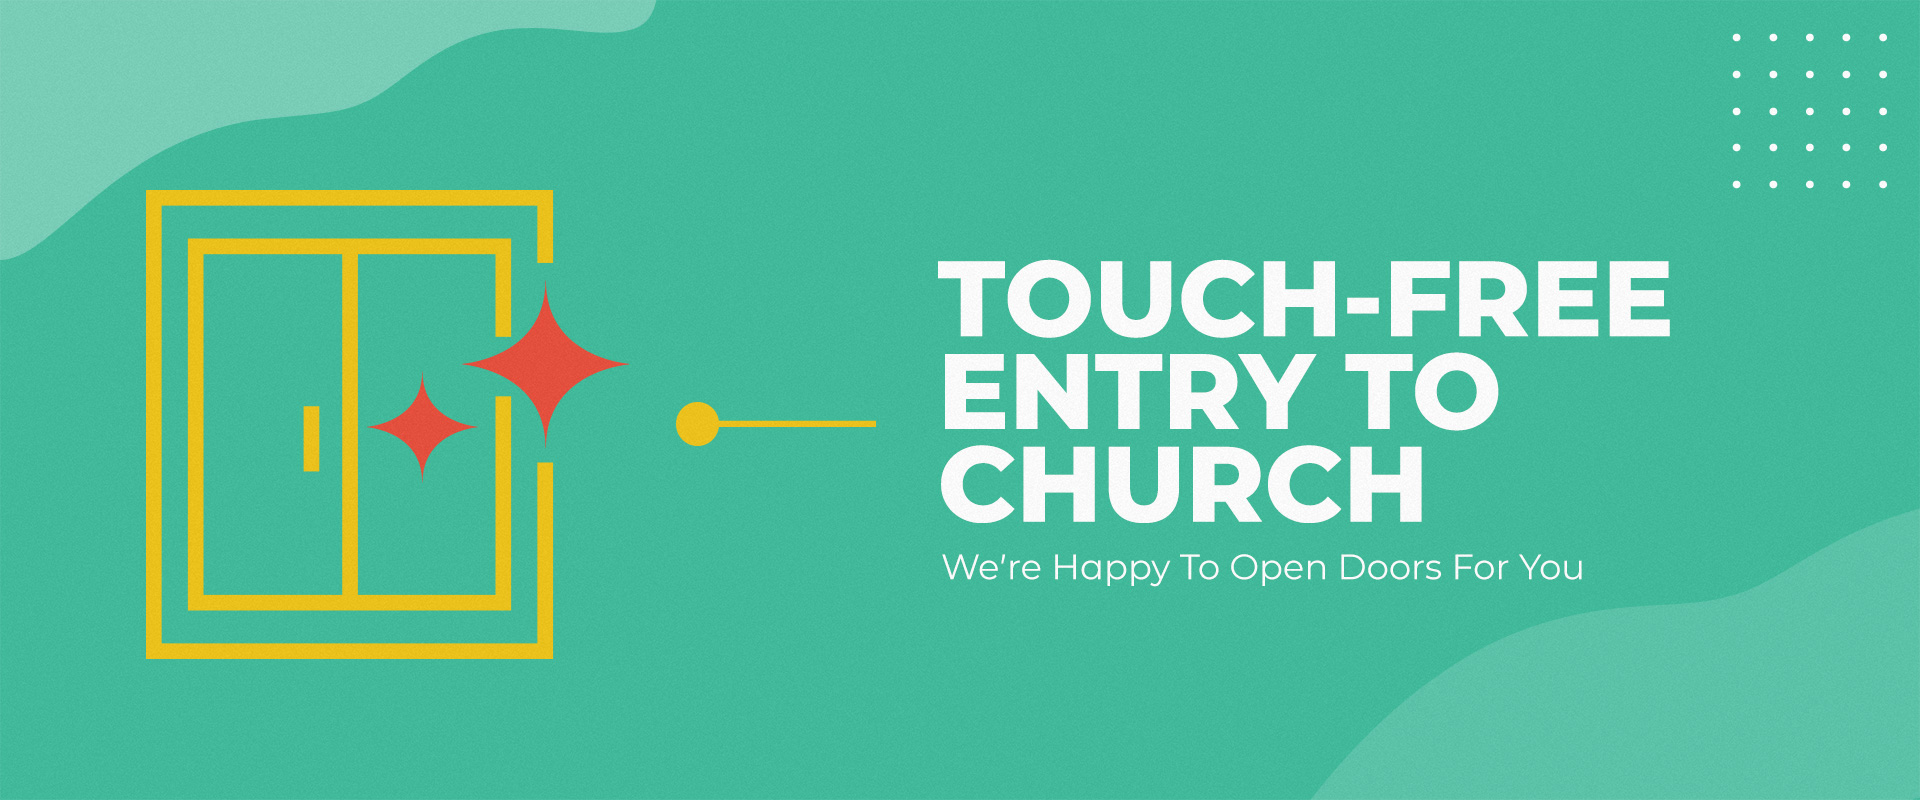 Touch_Free_Entry_To_Church_Church_Reopening_-_rsffw